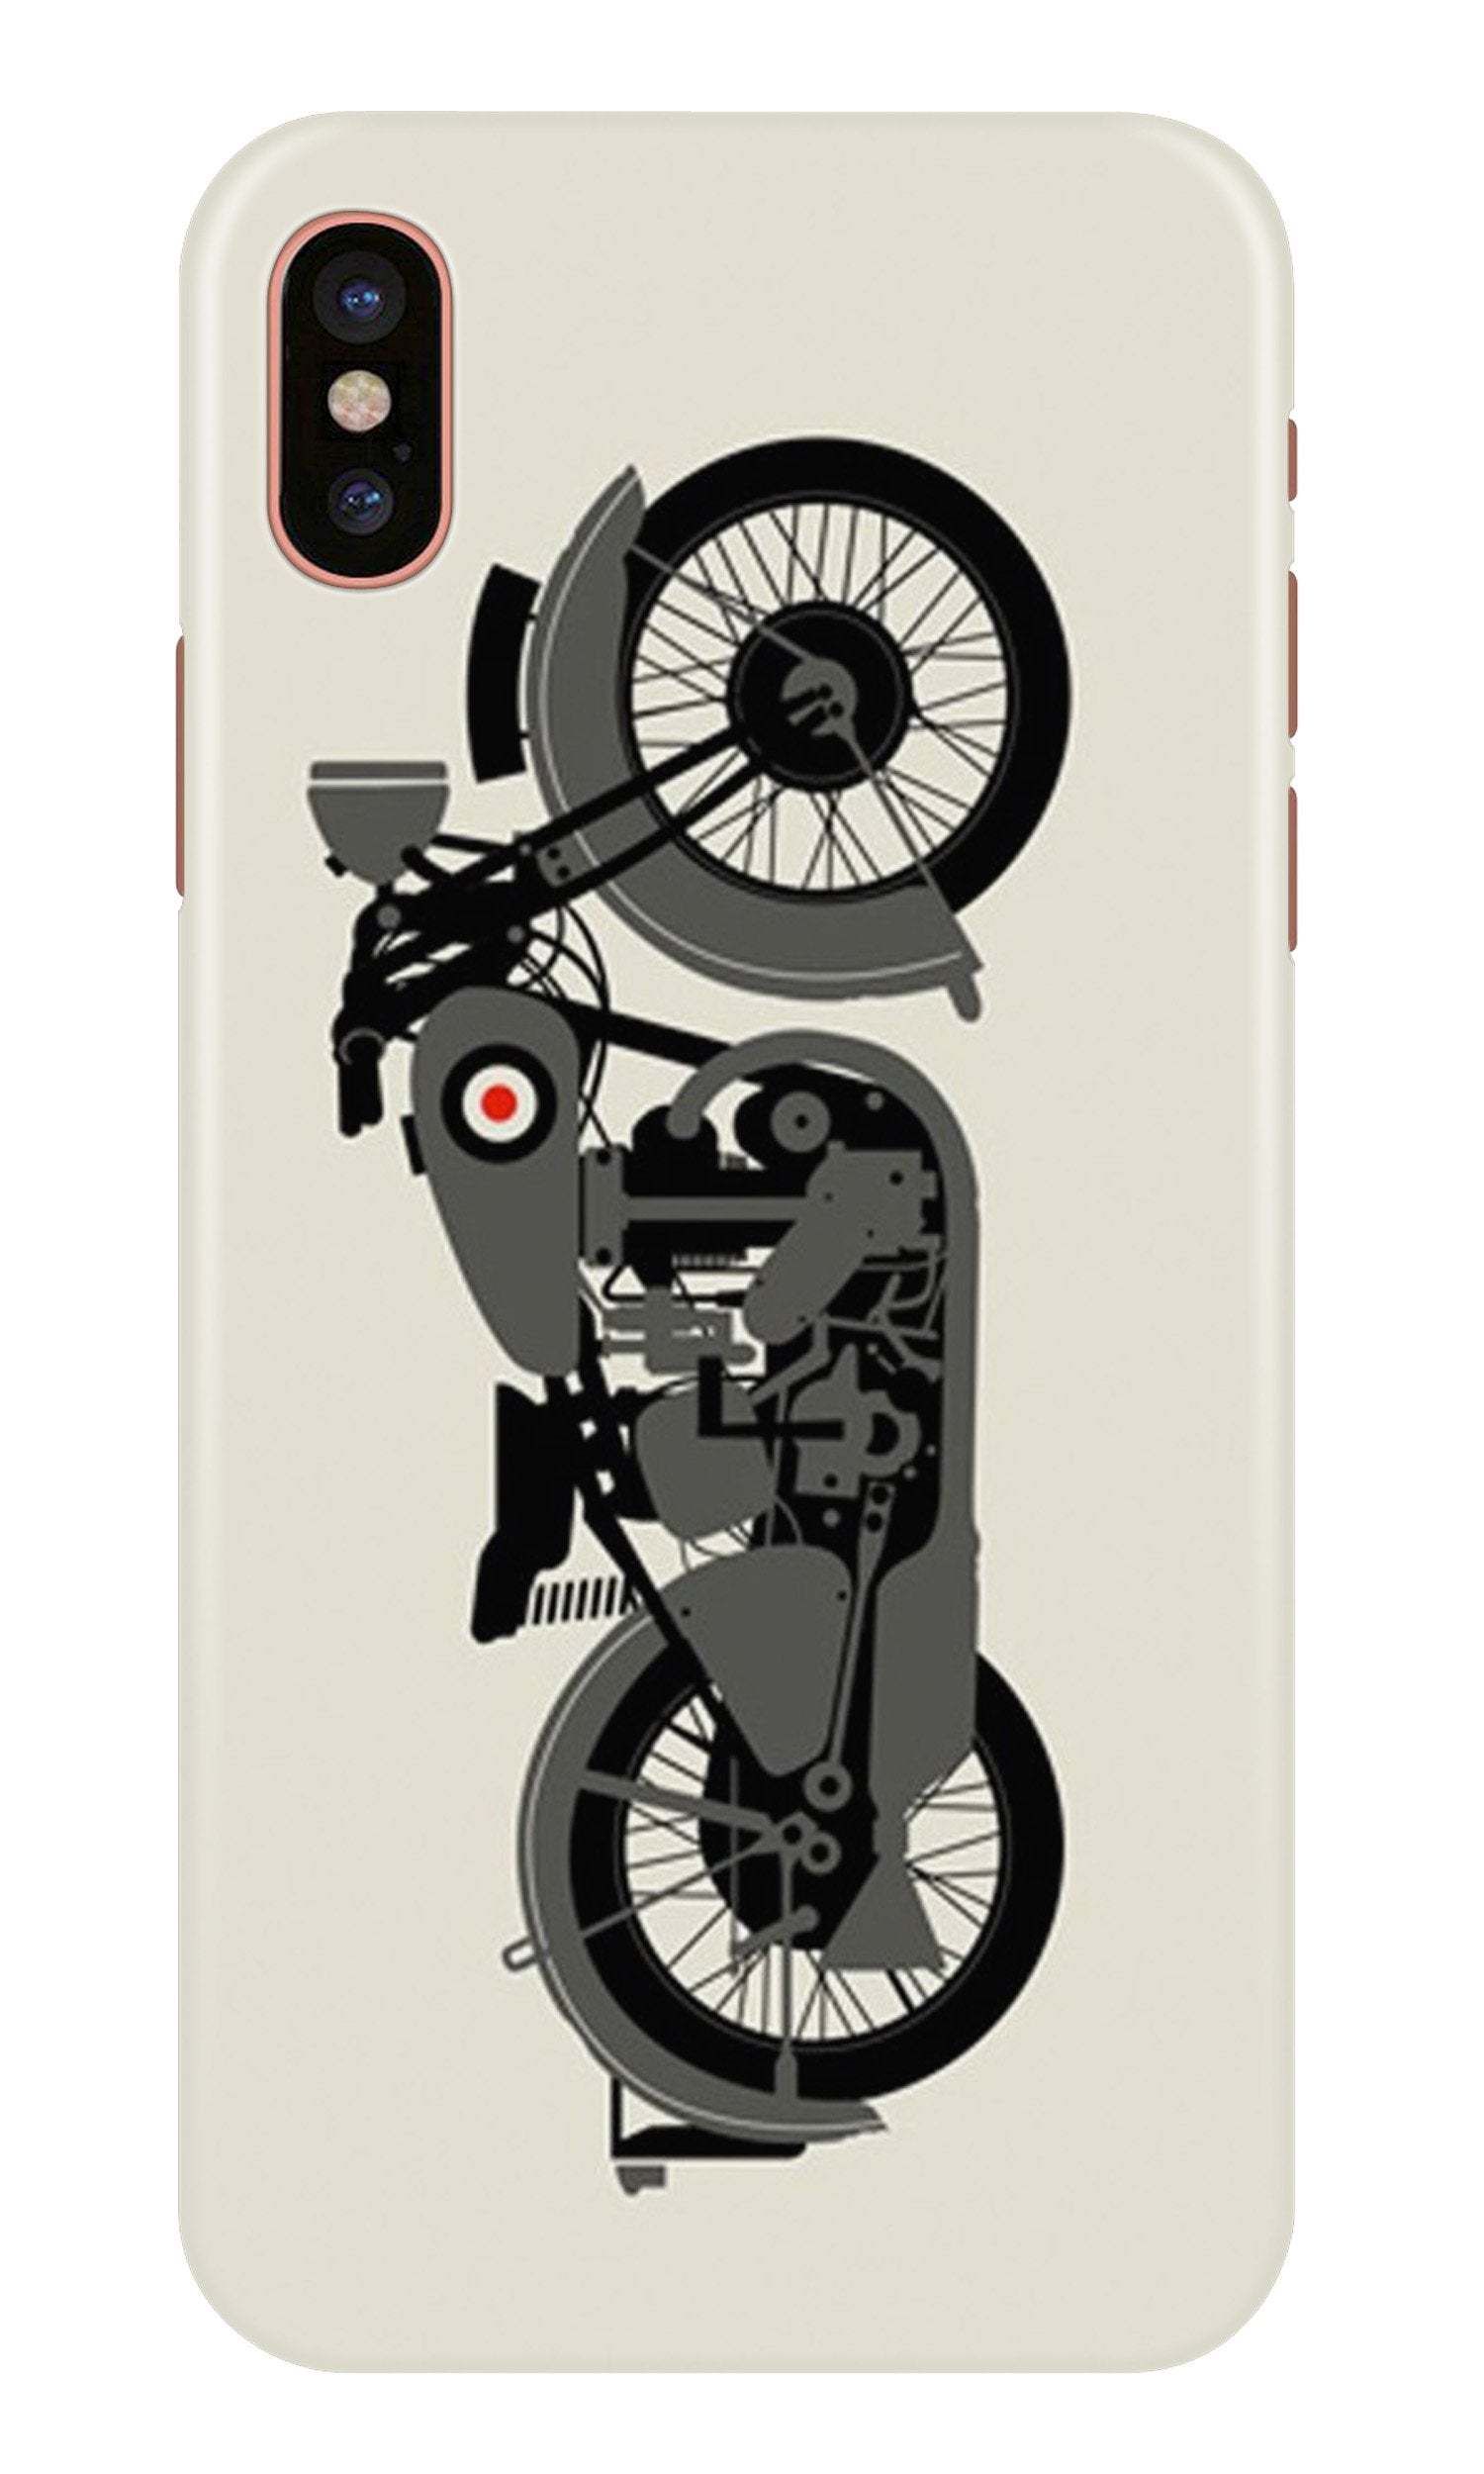 MotorCycle Case for iPhone X (Design No. 259)